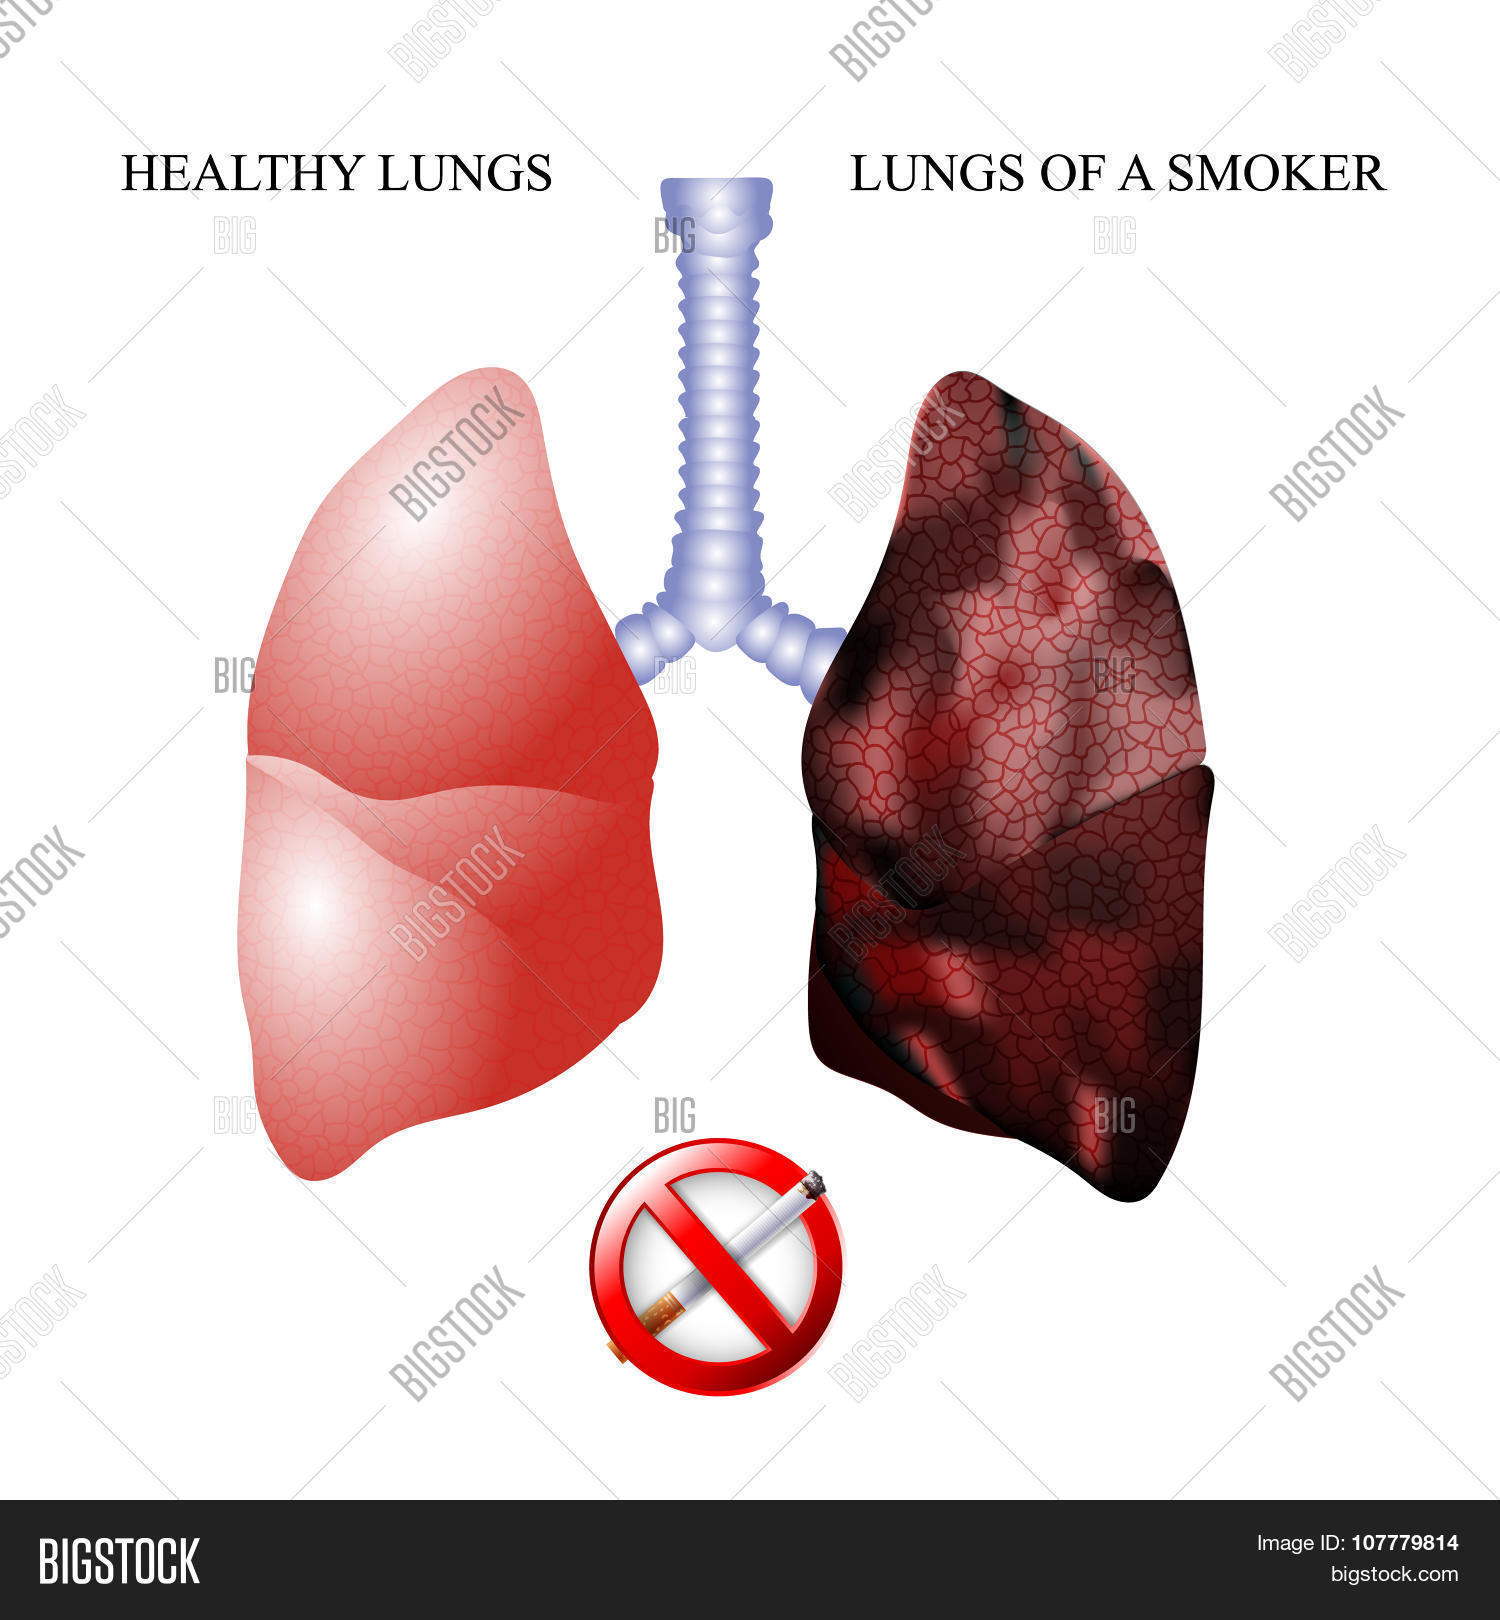 The lungs of a healthy person and the lungs of the smoker: a comparison. Diseases of the lungs from smoking 43